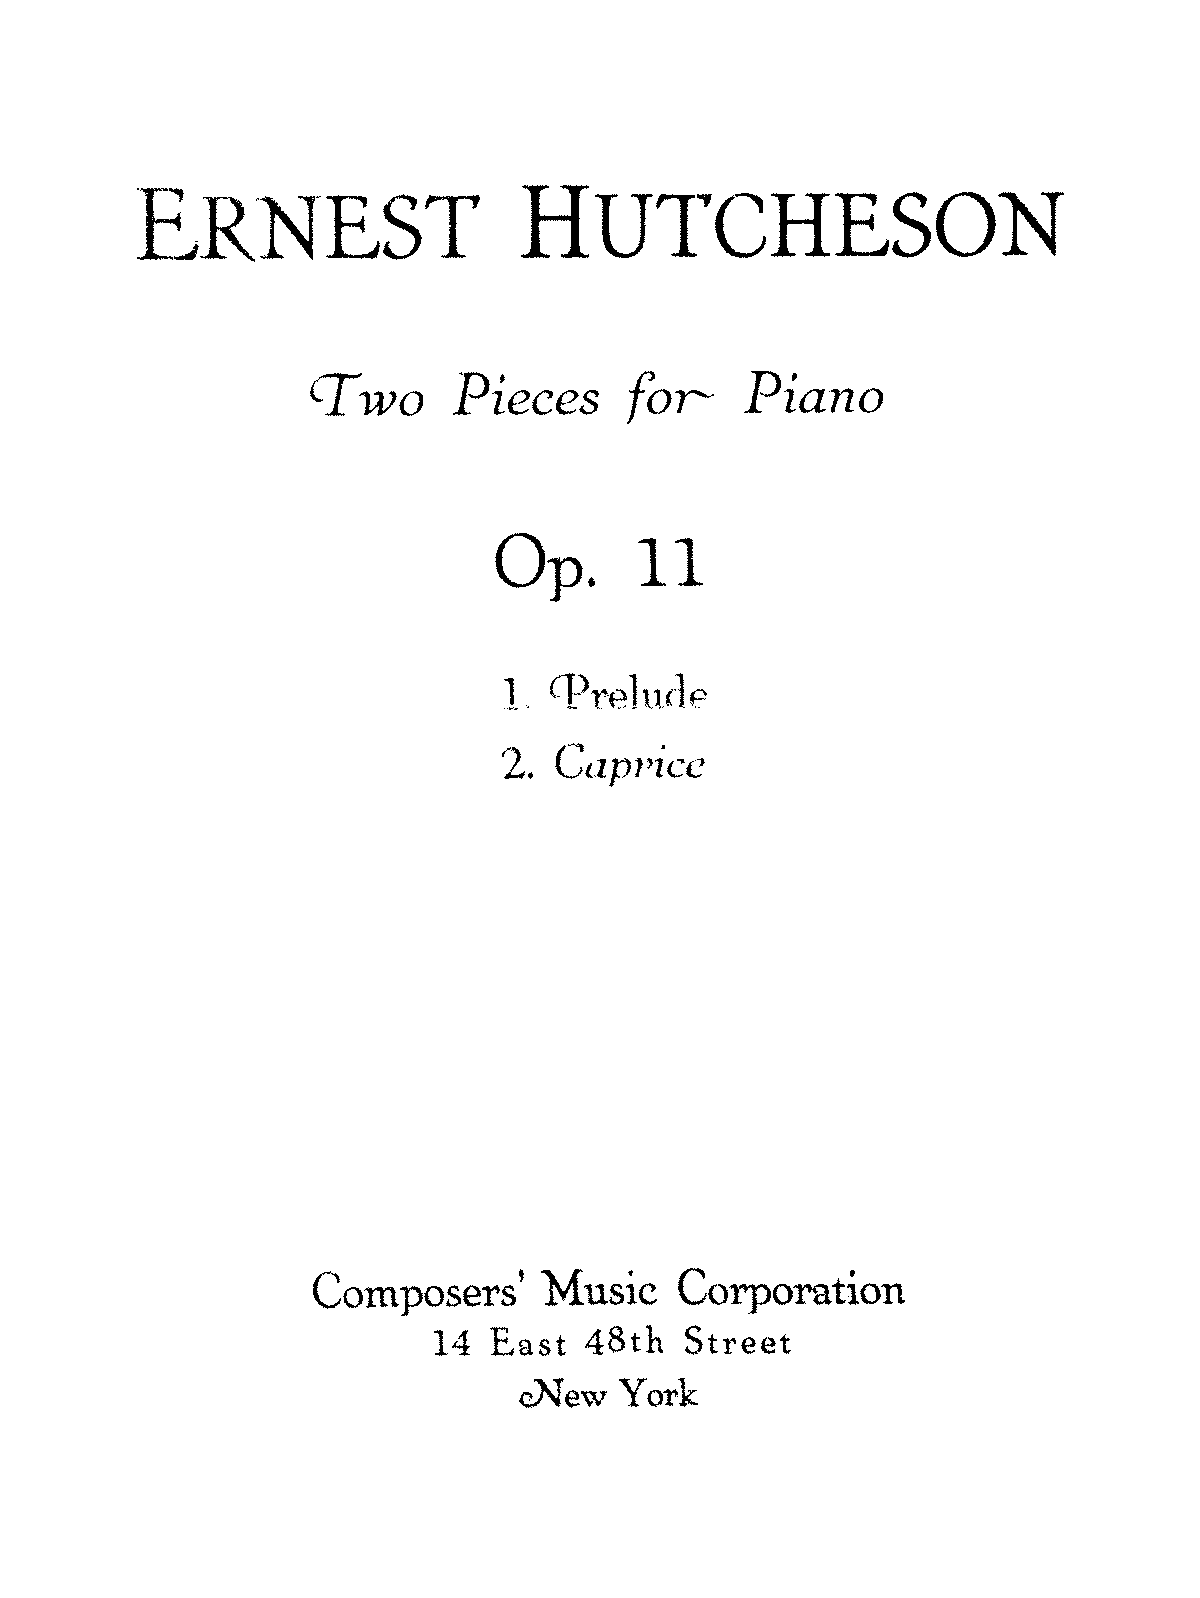 PMLP489309-EHutcheson 2 Pieces, Op.11.pdf